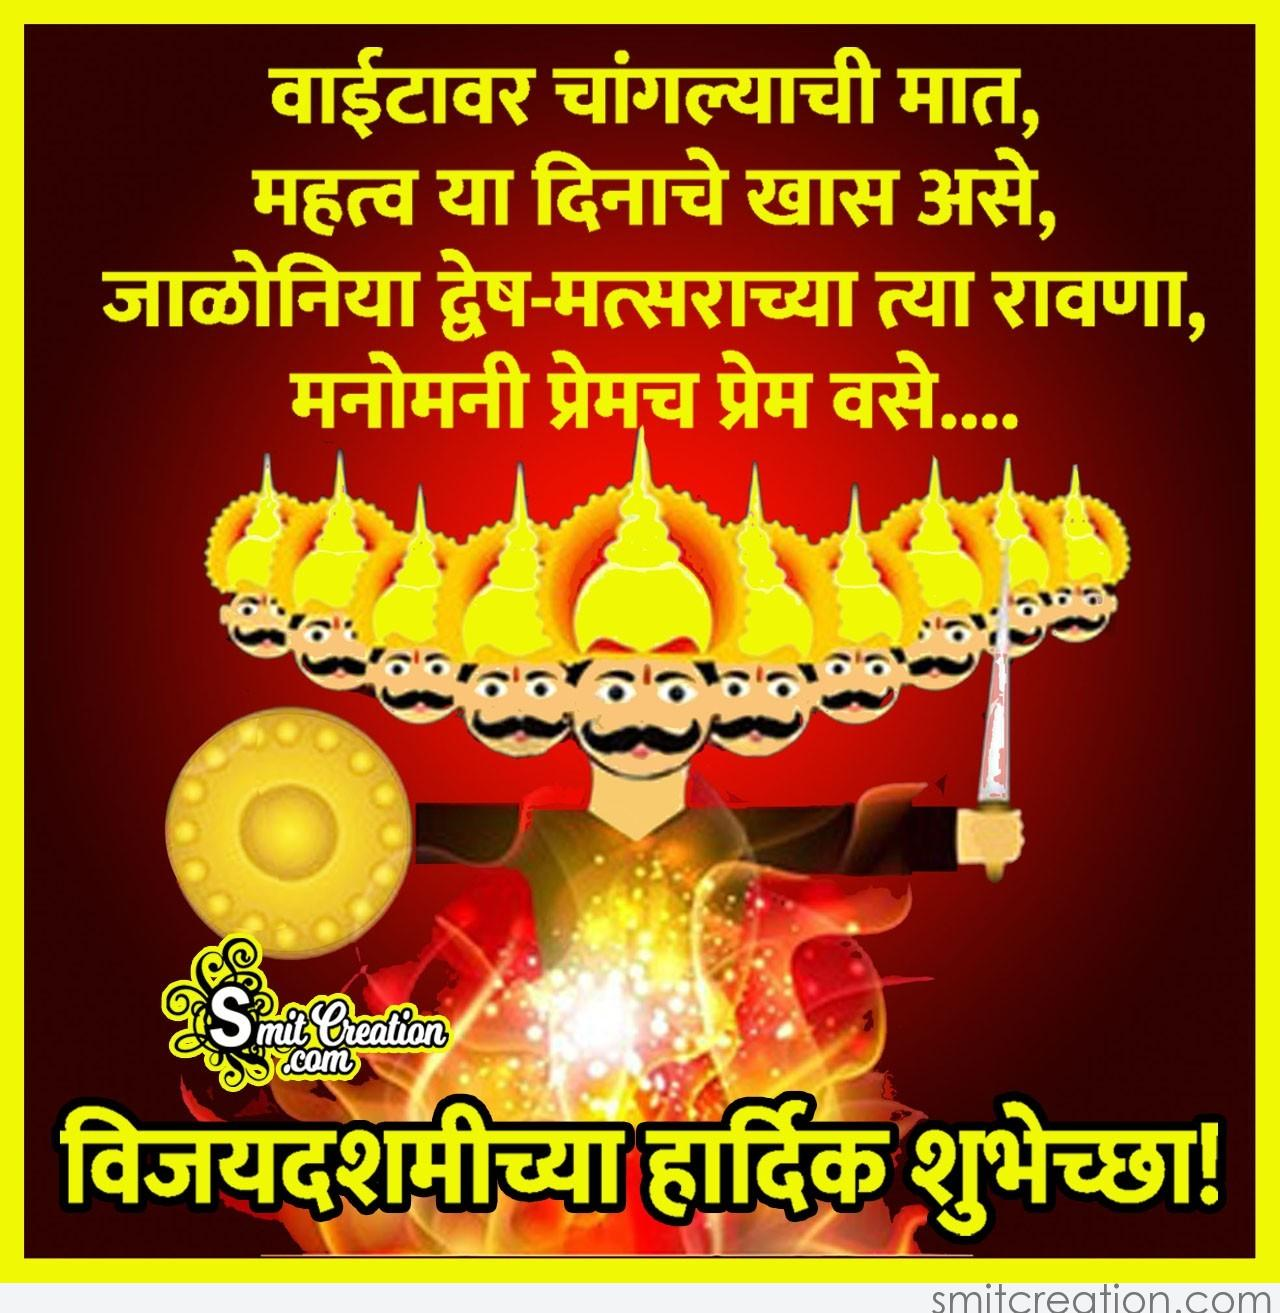 Dussehra marathi pictures and graphics smitcreation download image m4hsunfo